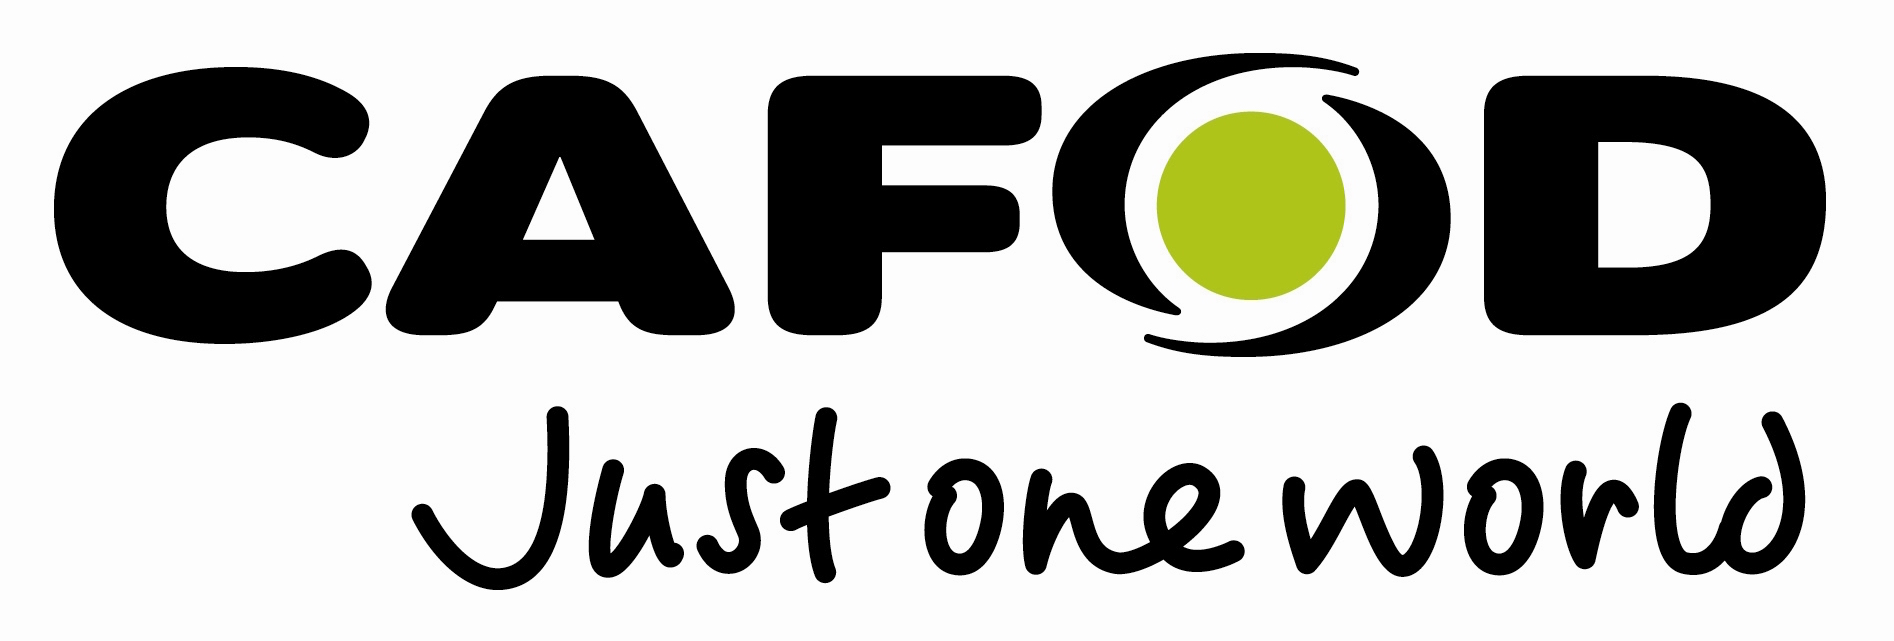 CAFOD (Catholic Agency For Overseas Development)